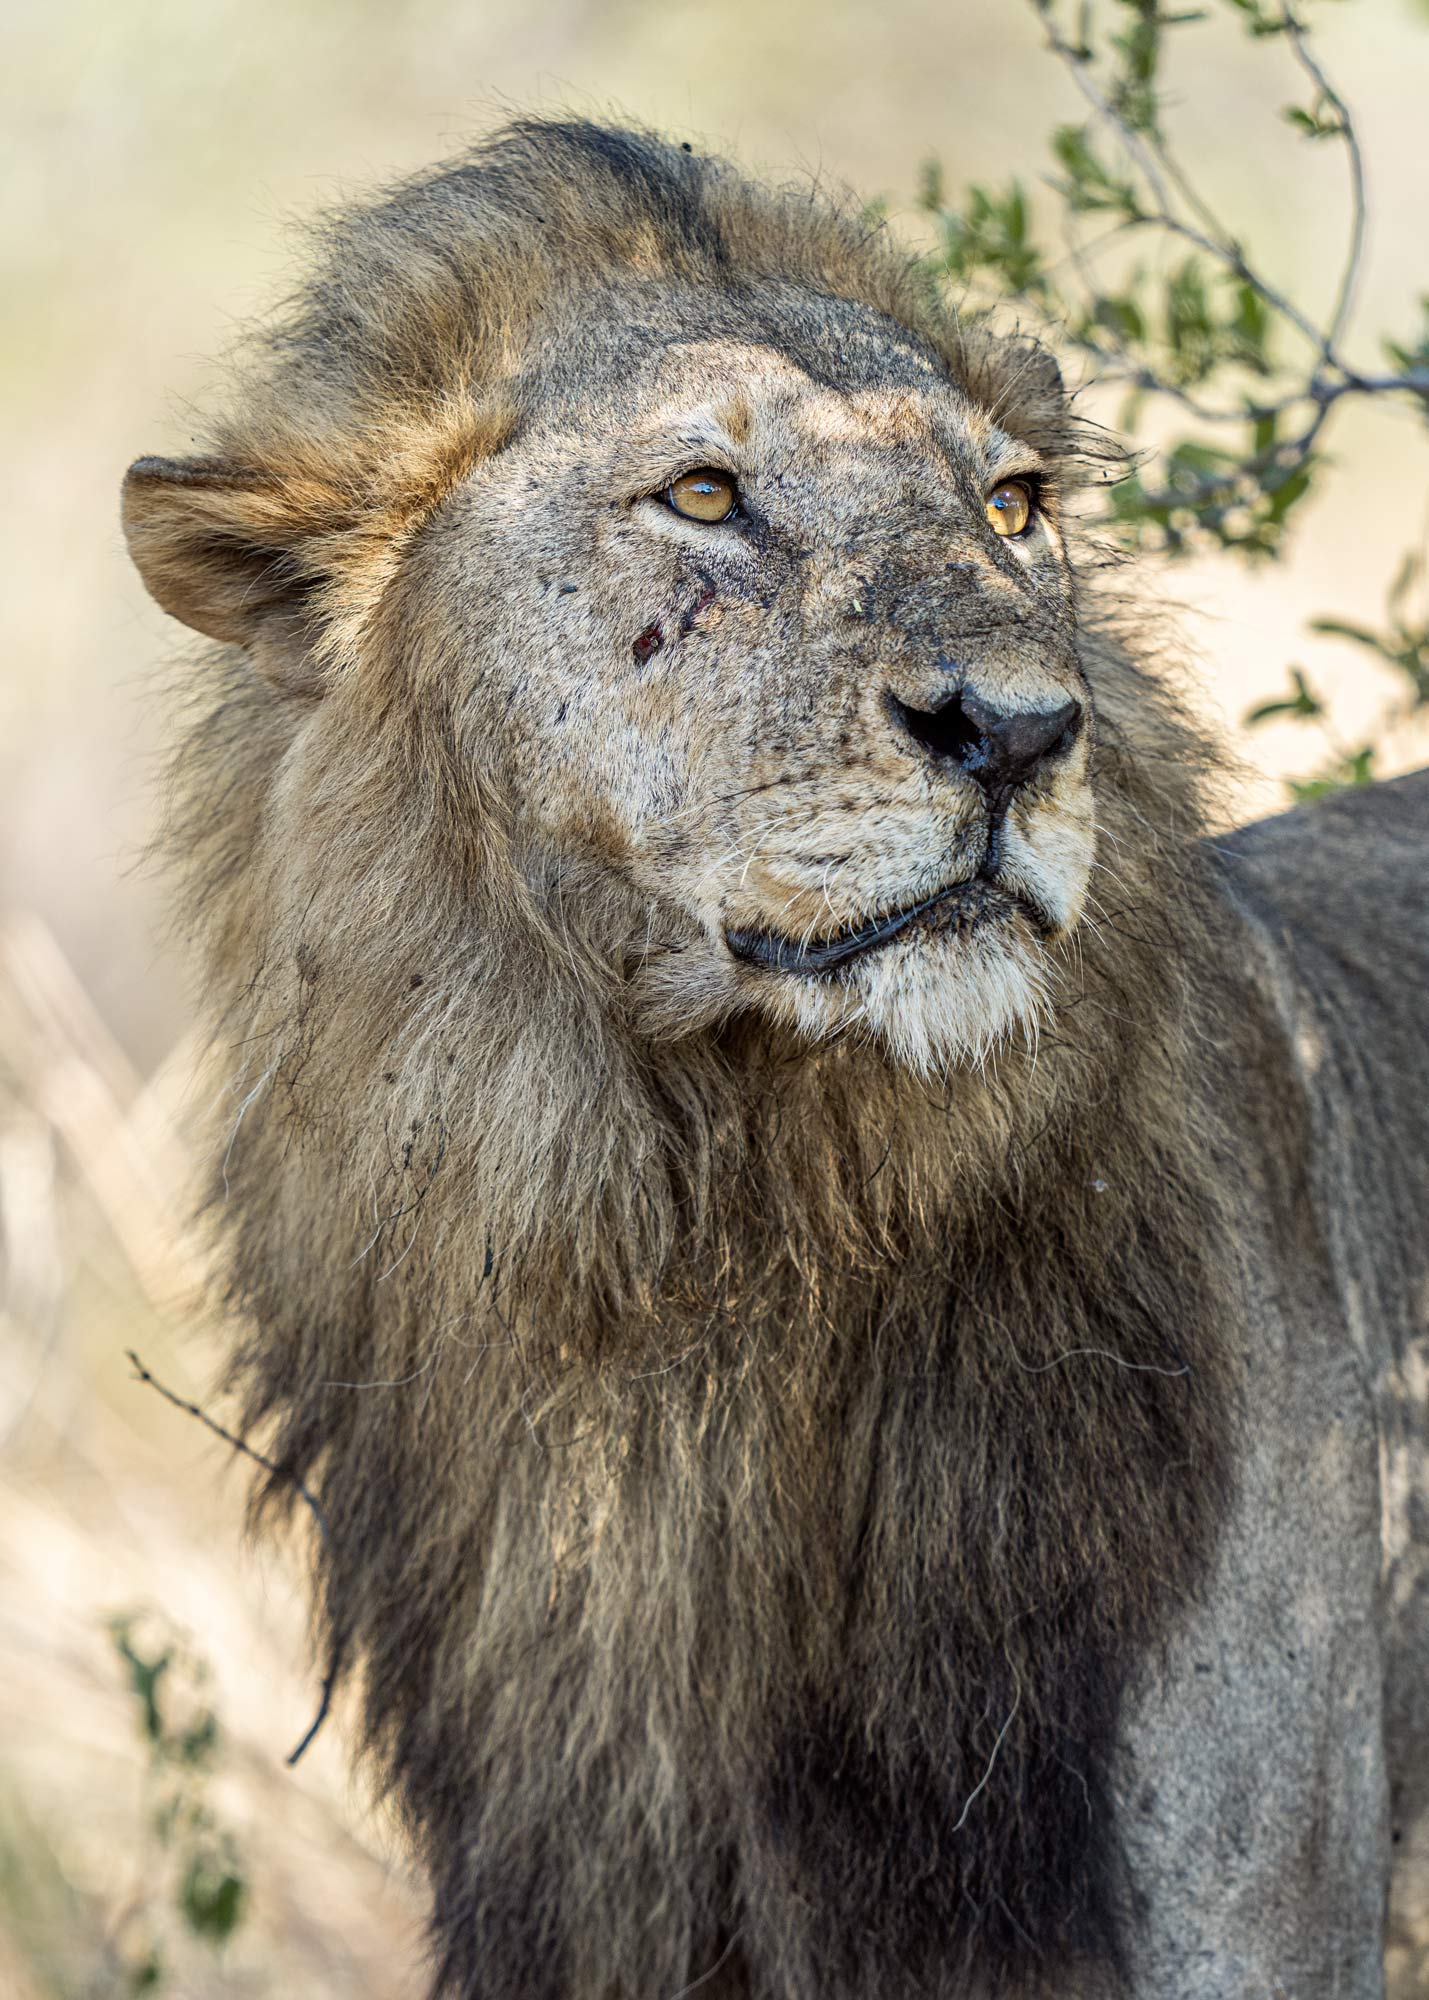 Lion photographed in Katavi nationalpark in Tanzania